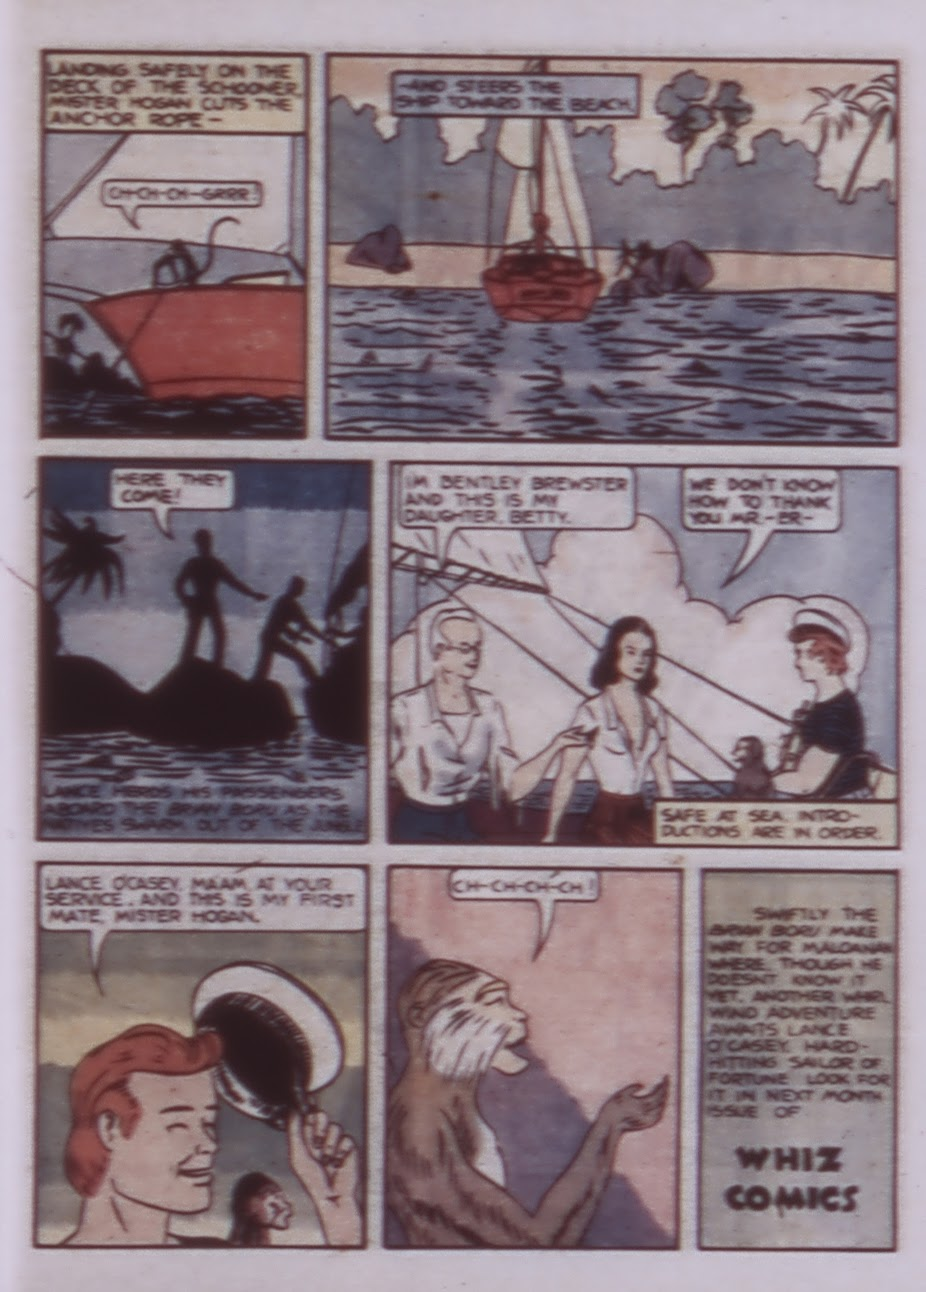 Read online WHIZ Comics comic -  Issue #1 - 57